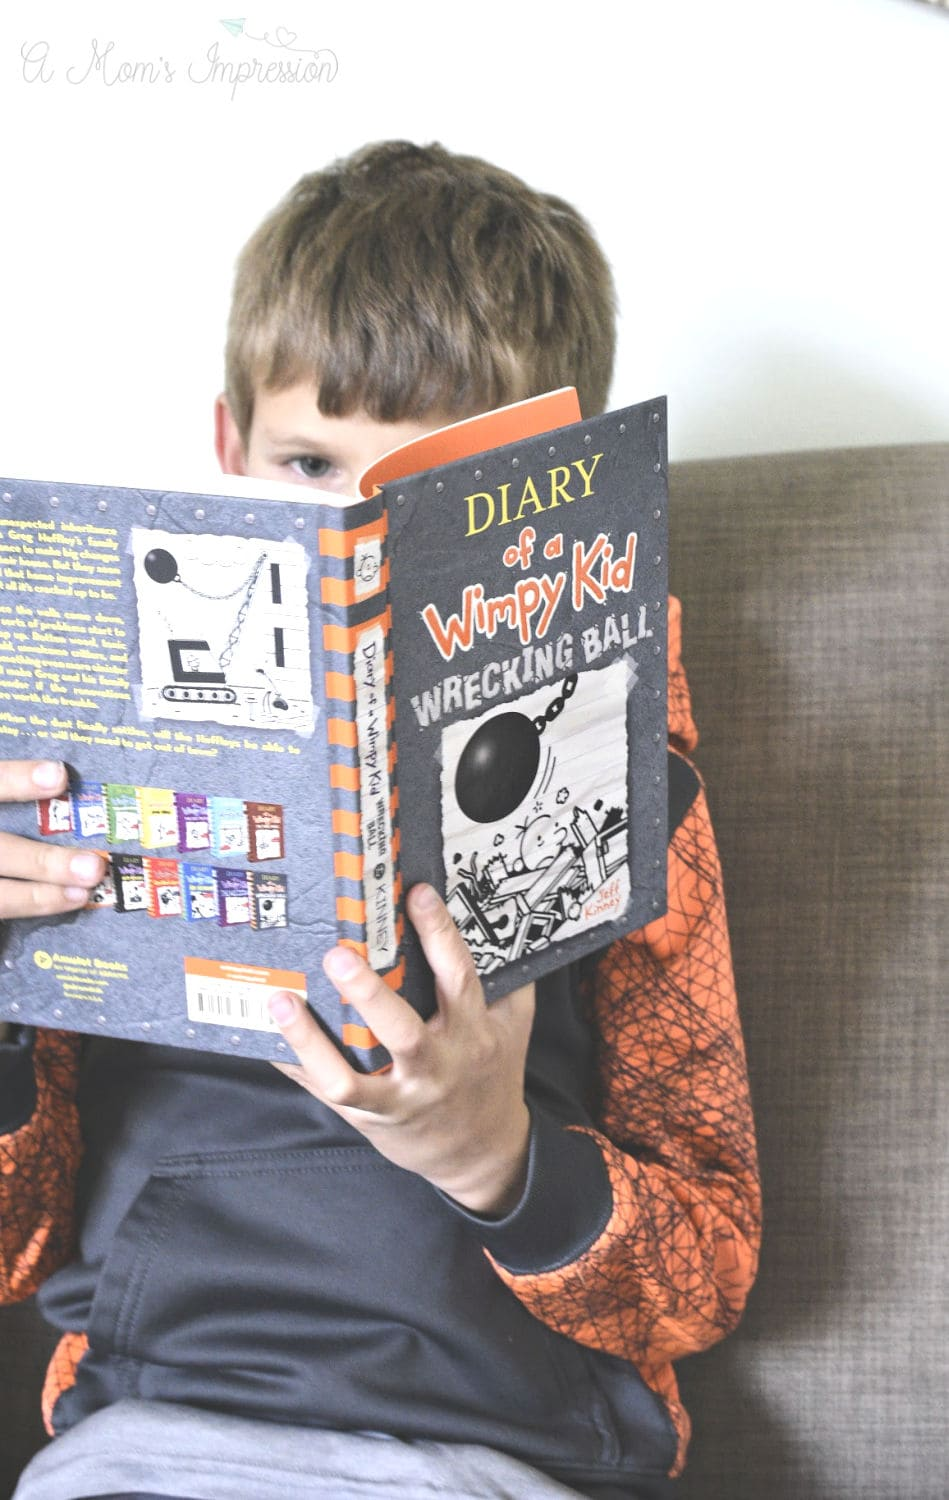 Ready wimpy kid books